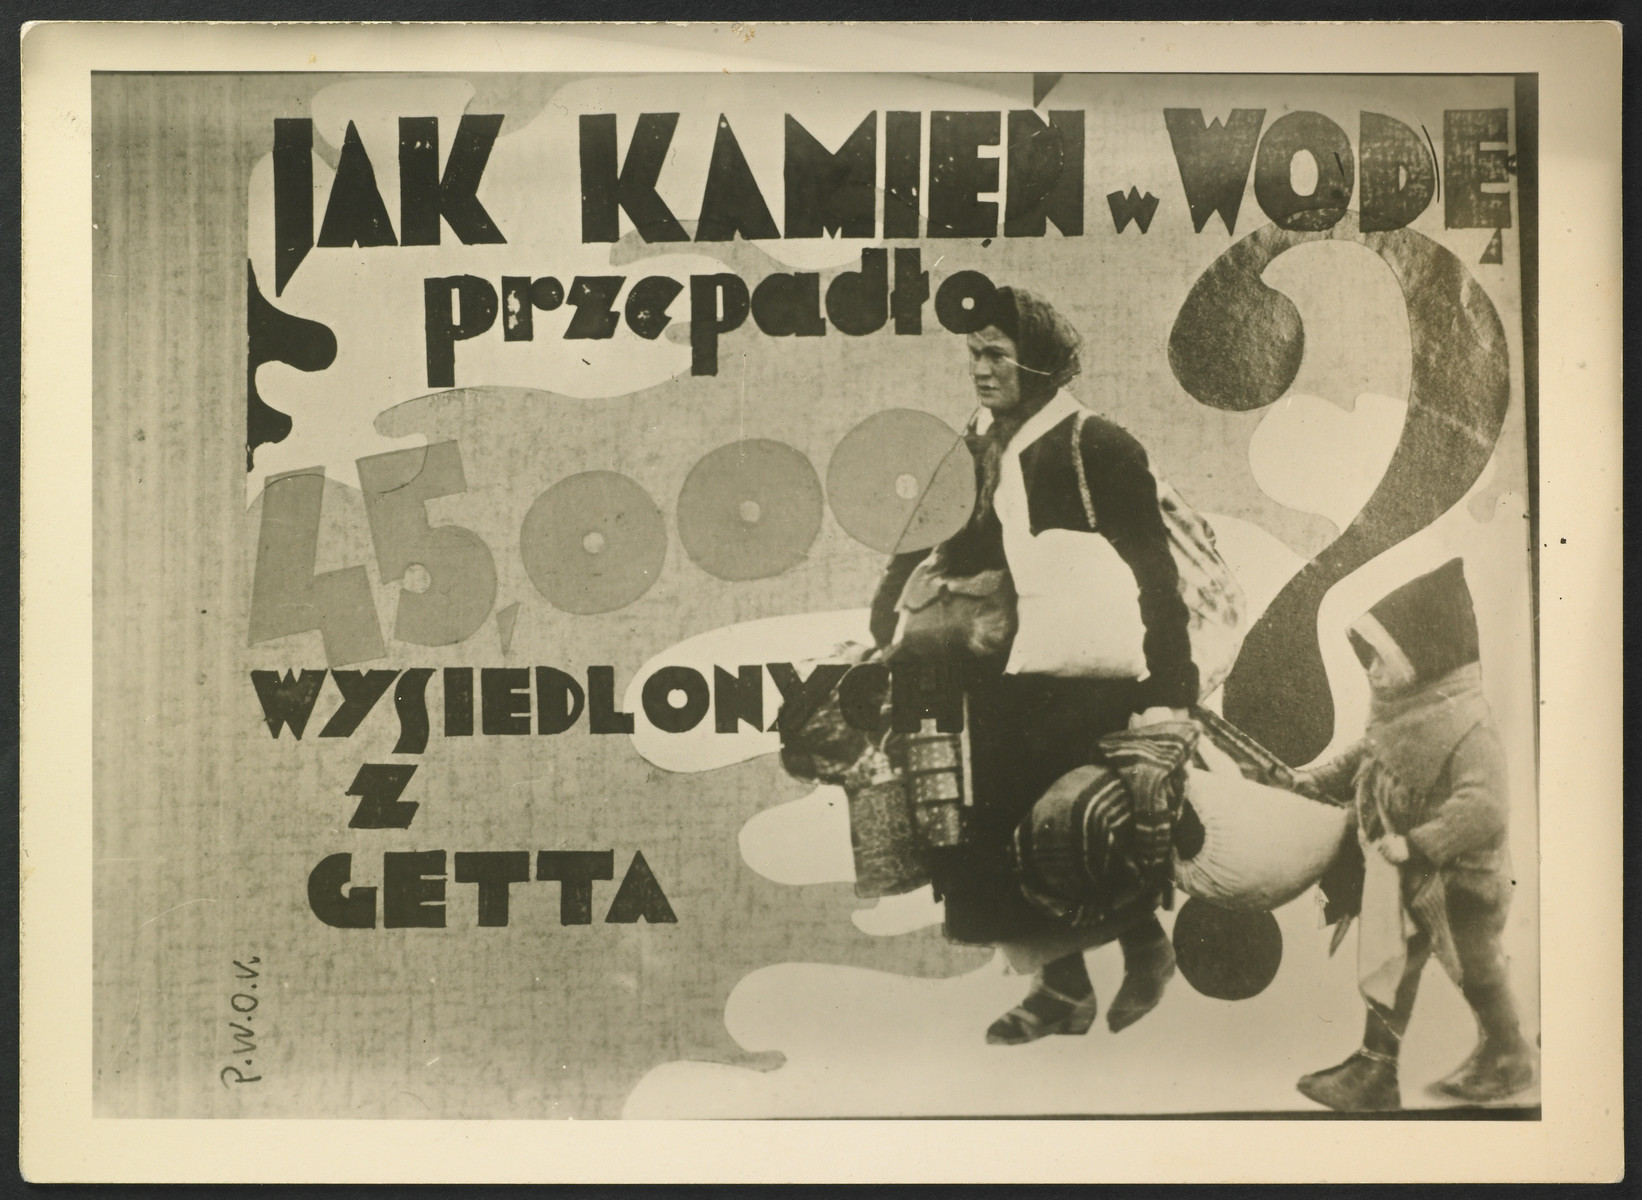 "Collage created by Arie Princ (now Ben Menachem) using documents from the Lodz ghetto and photographs by Mendel Grosman.   The sign reads: ""Jak kamien w wode przepadlo 45,000 wysiedlonych z Getta"" (""Like a stone in water they disappeared - 45,000 deported from the ghetto"").  The collage was published during the war by the underground organisation PWOK, the Aid for Prisoners of Concentration Camps."